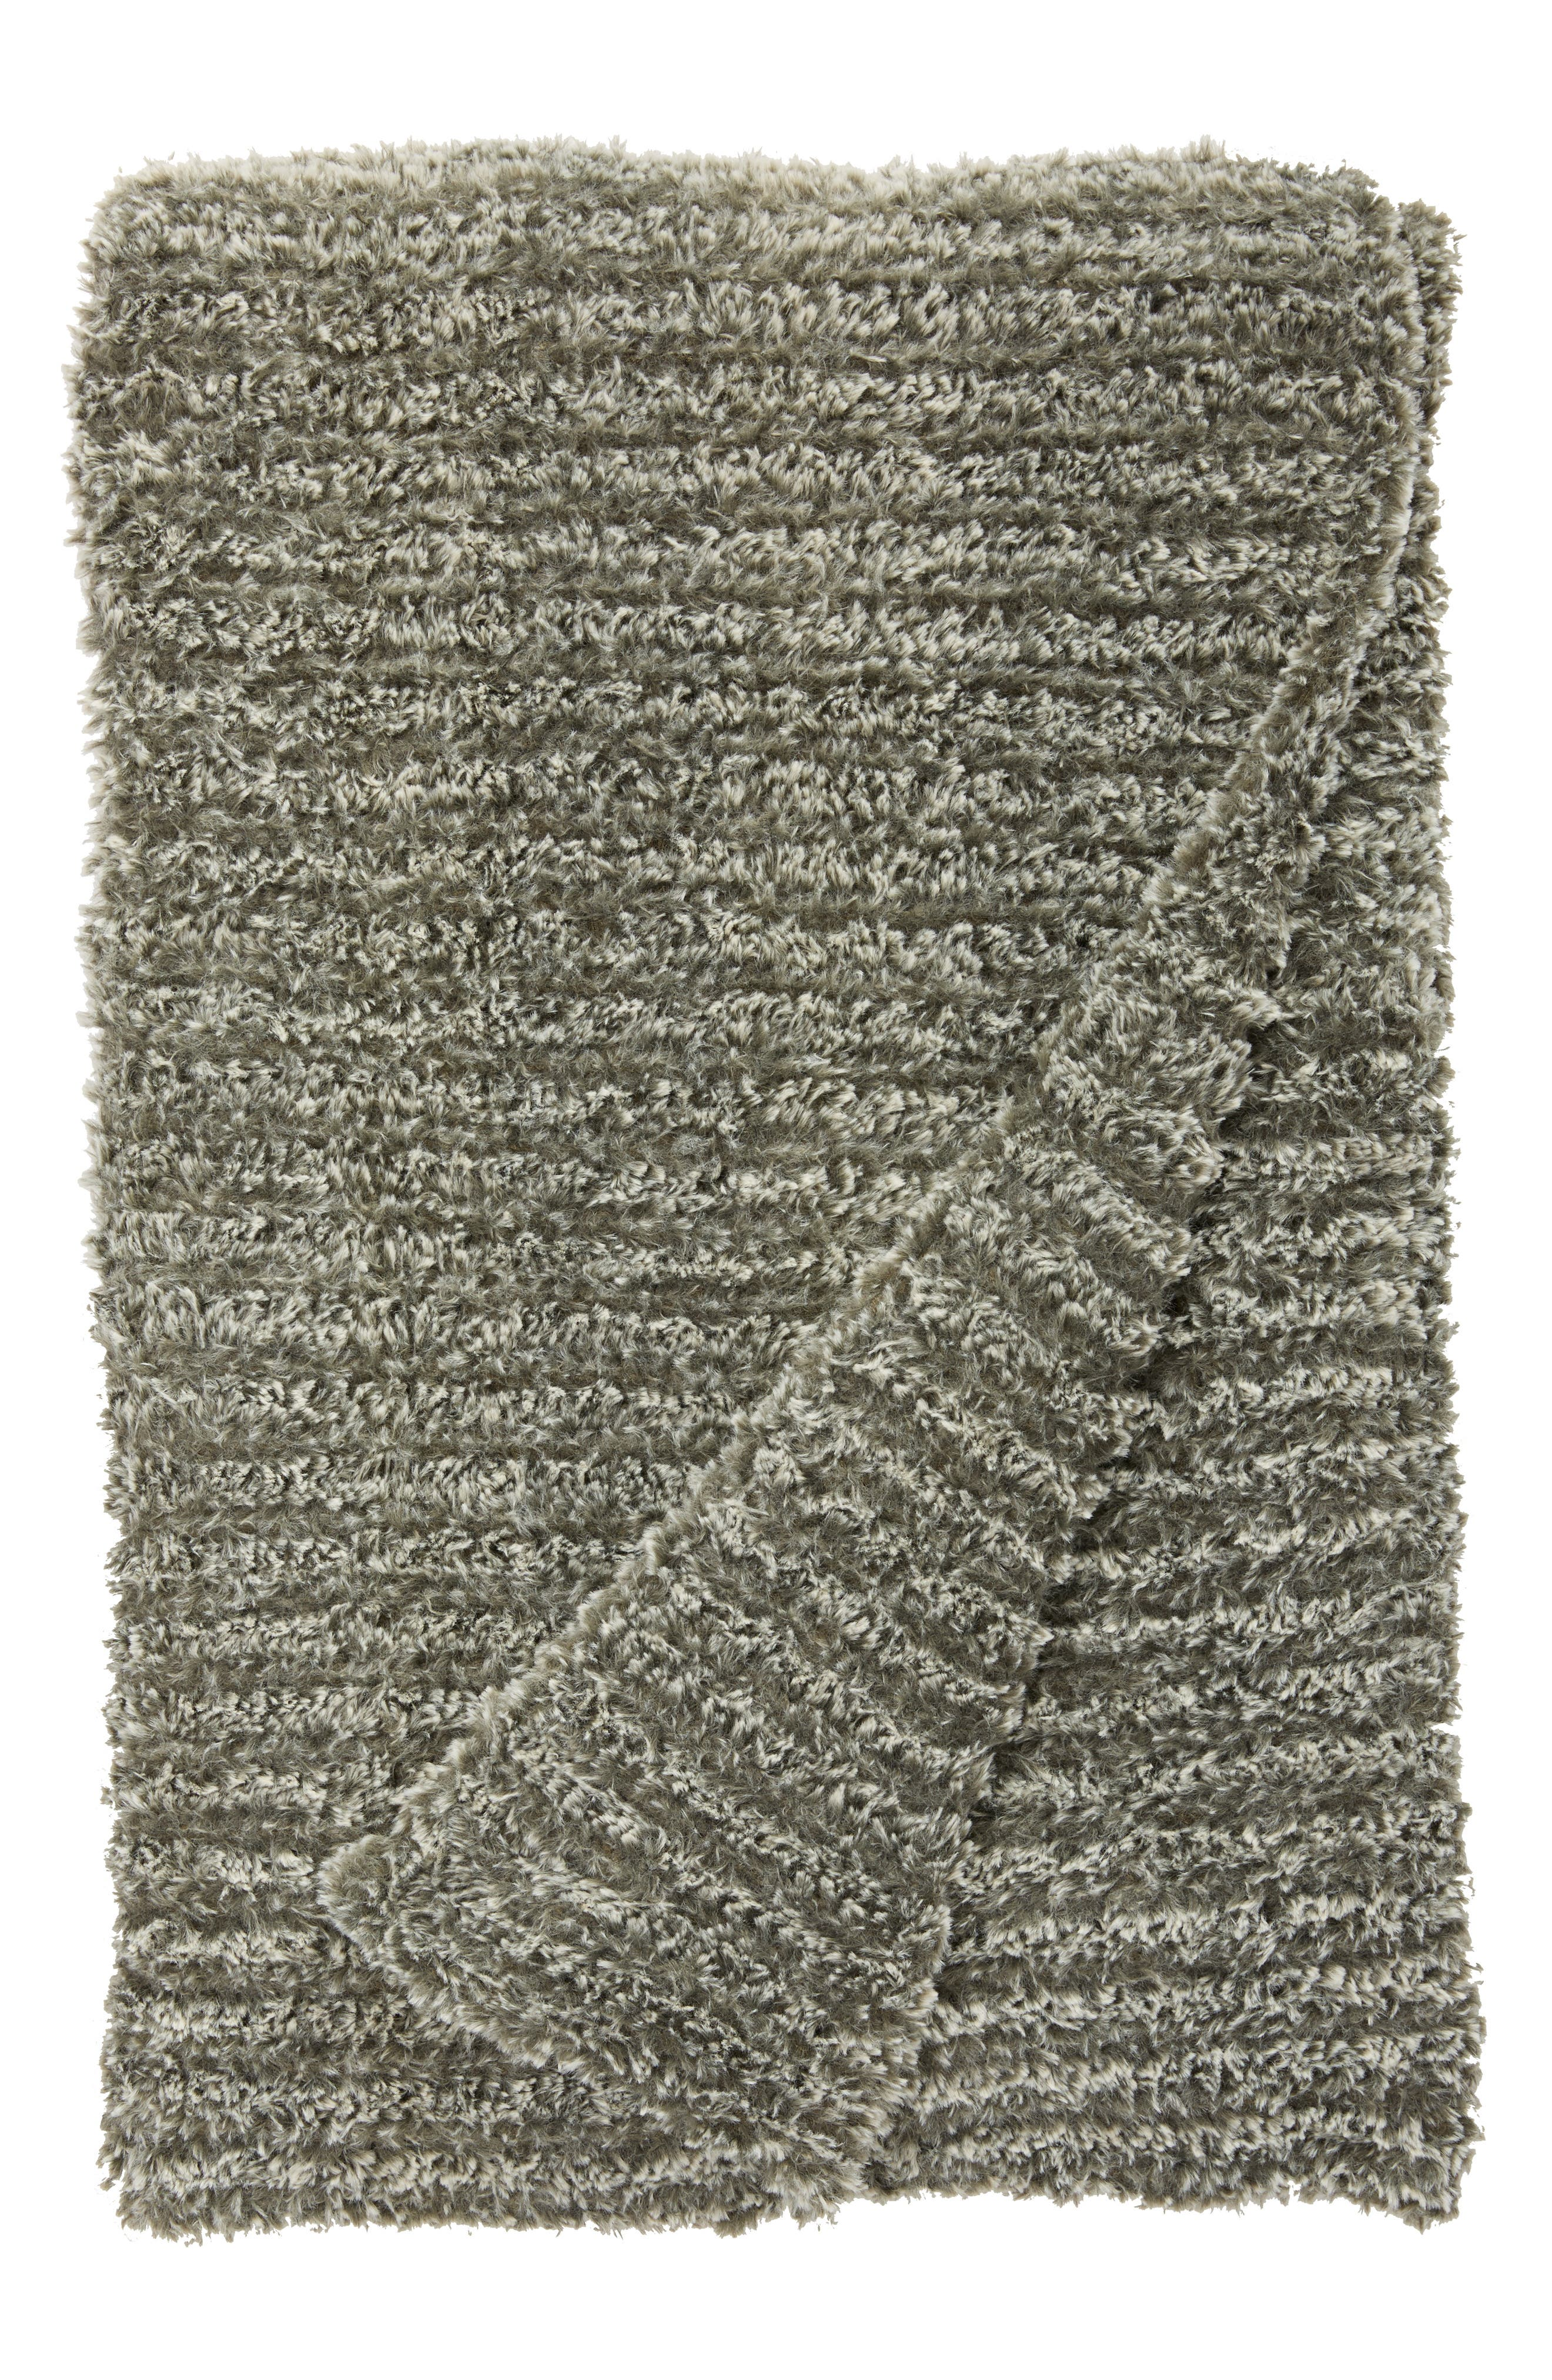 Main Image - Giraffe at Home Luxe™ Knit Throw Blanket